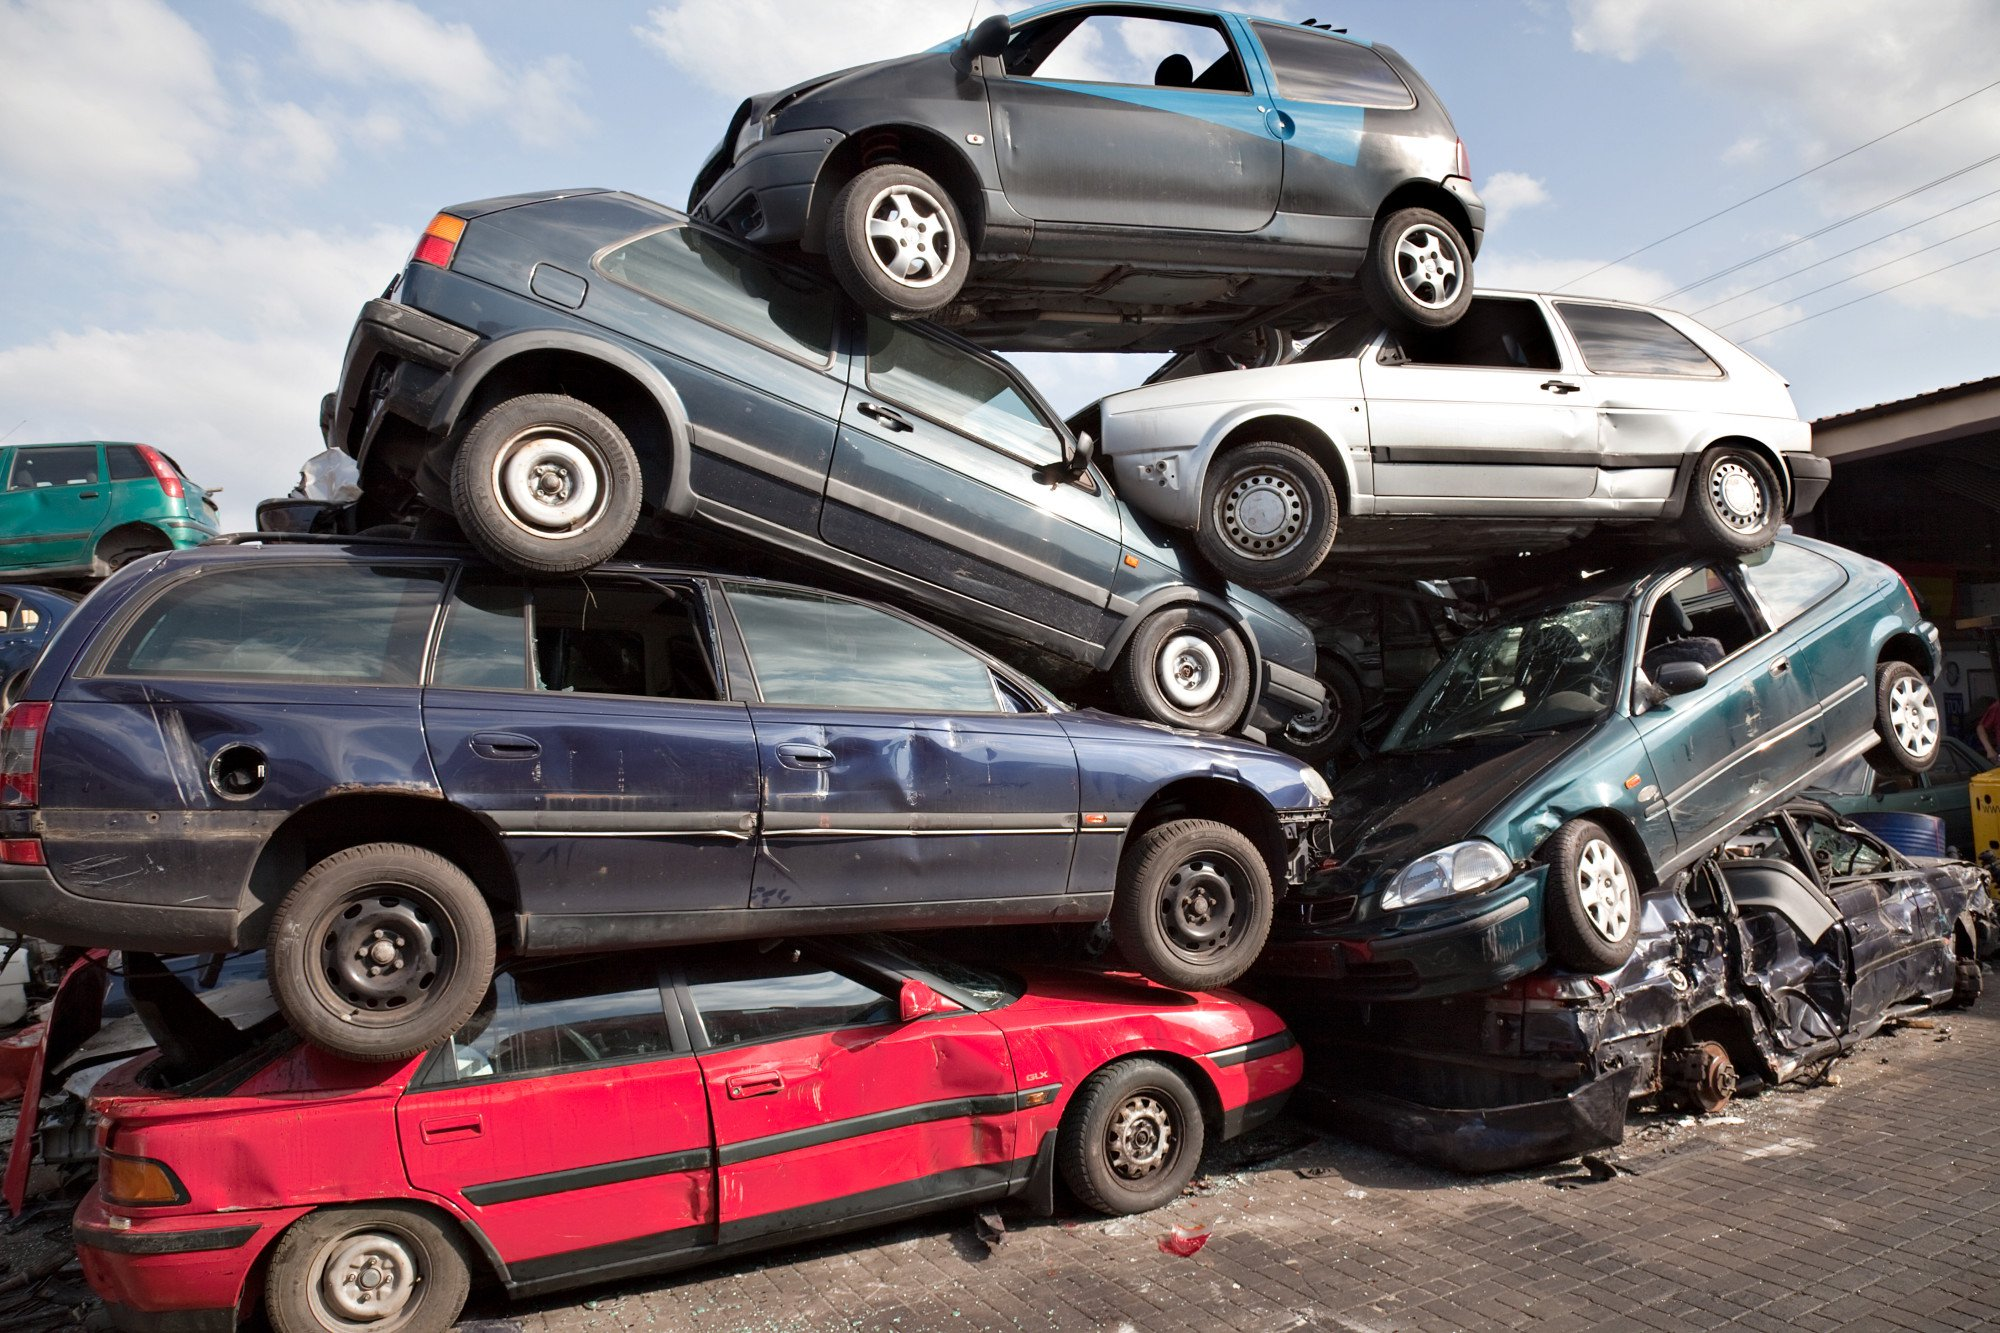 The Best Junk Car Buyers in Wichita, Kansas